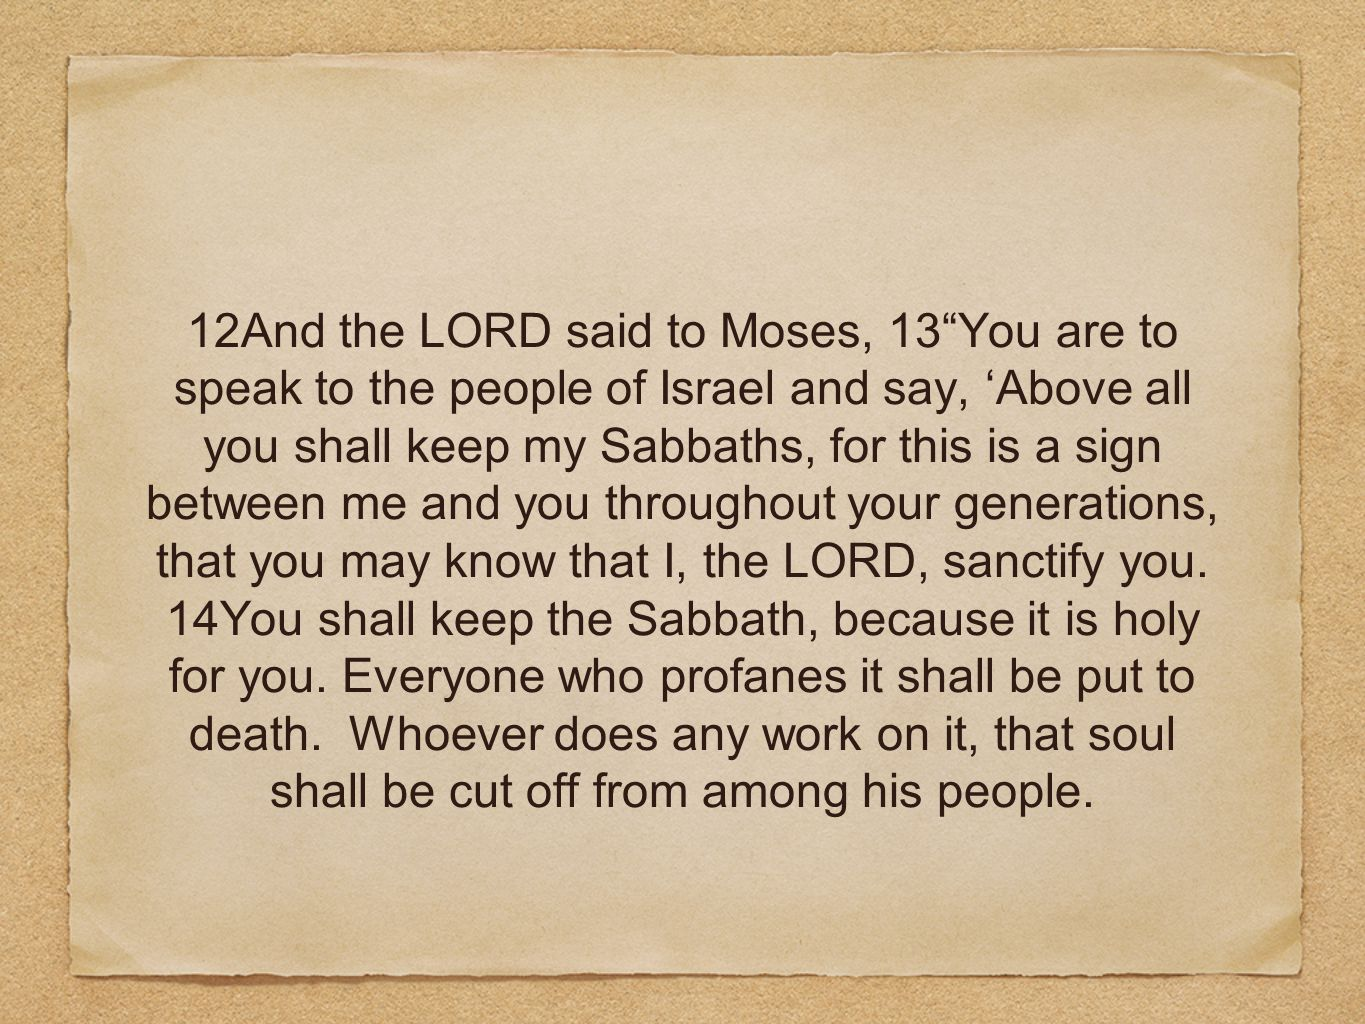 29And Moses said, Today you have been e ordained for the service of the LORD, each one at the cost of his son and of his brother, so that he might bestow a blessing upon you this day. 30The next day Moses said to the people, You have sinned a great sin.